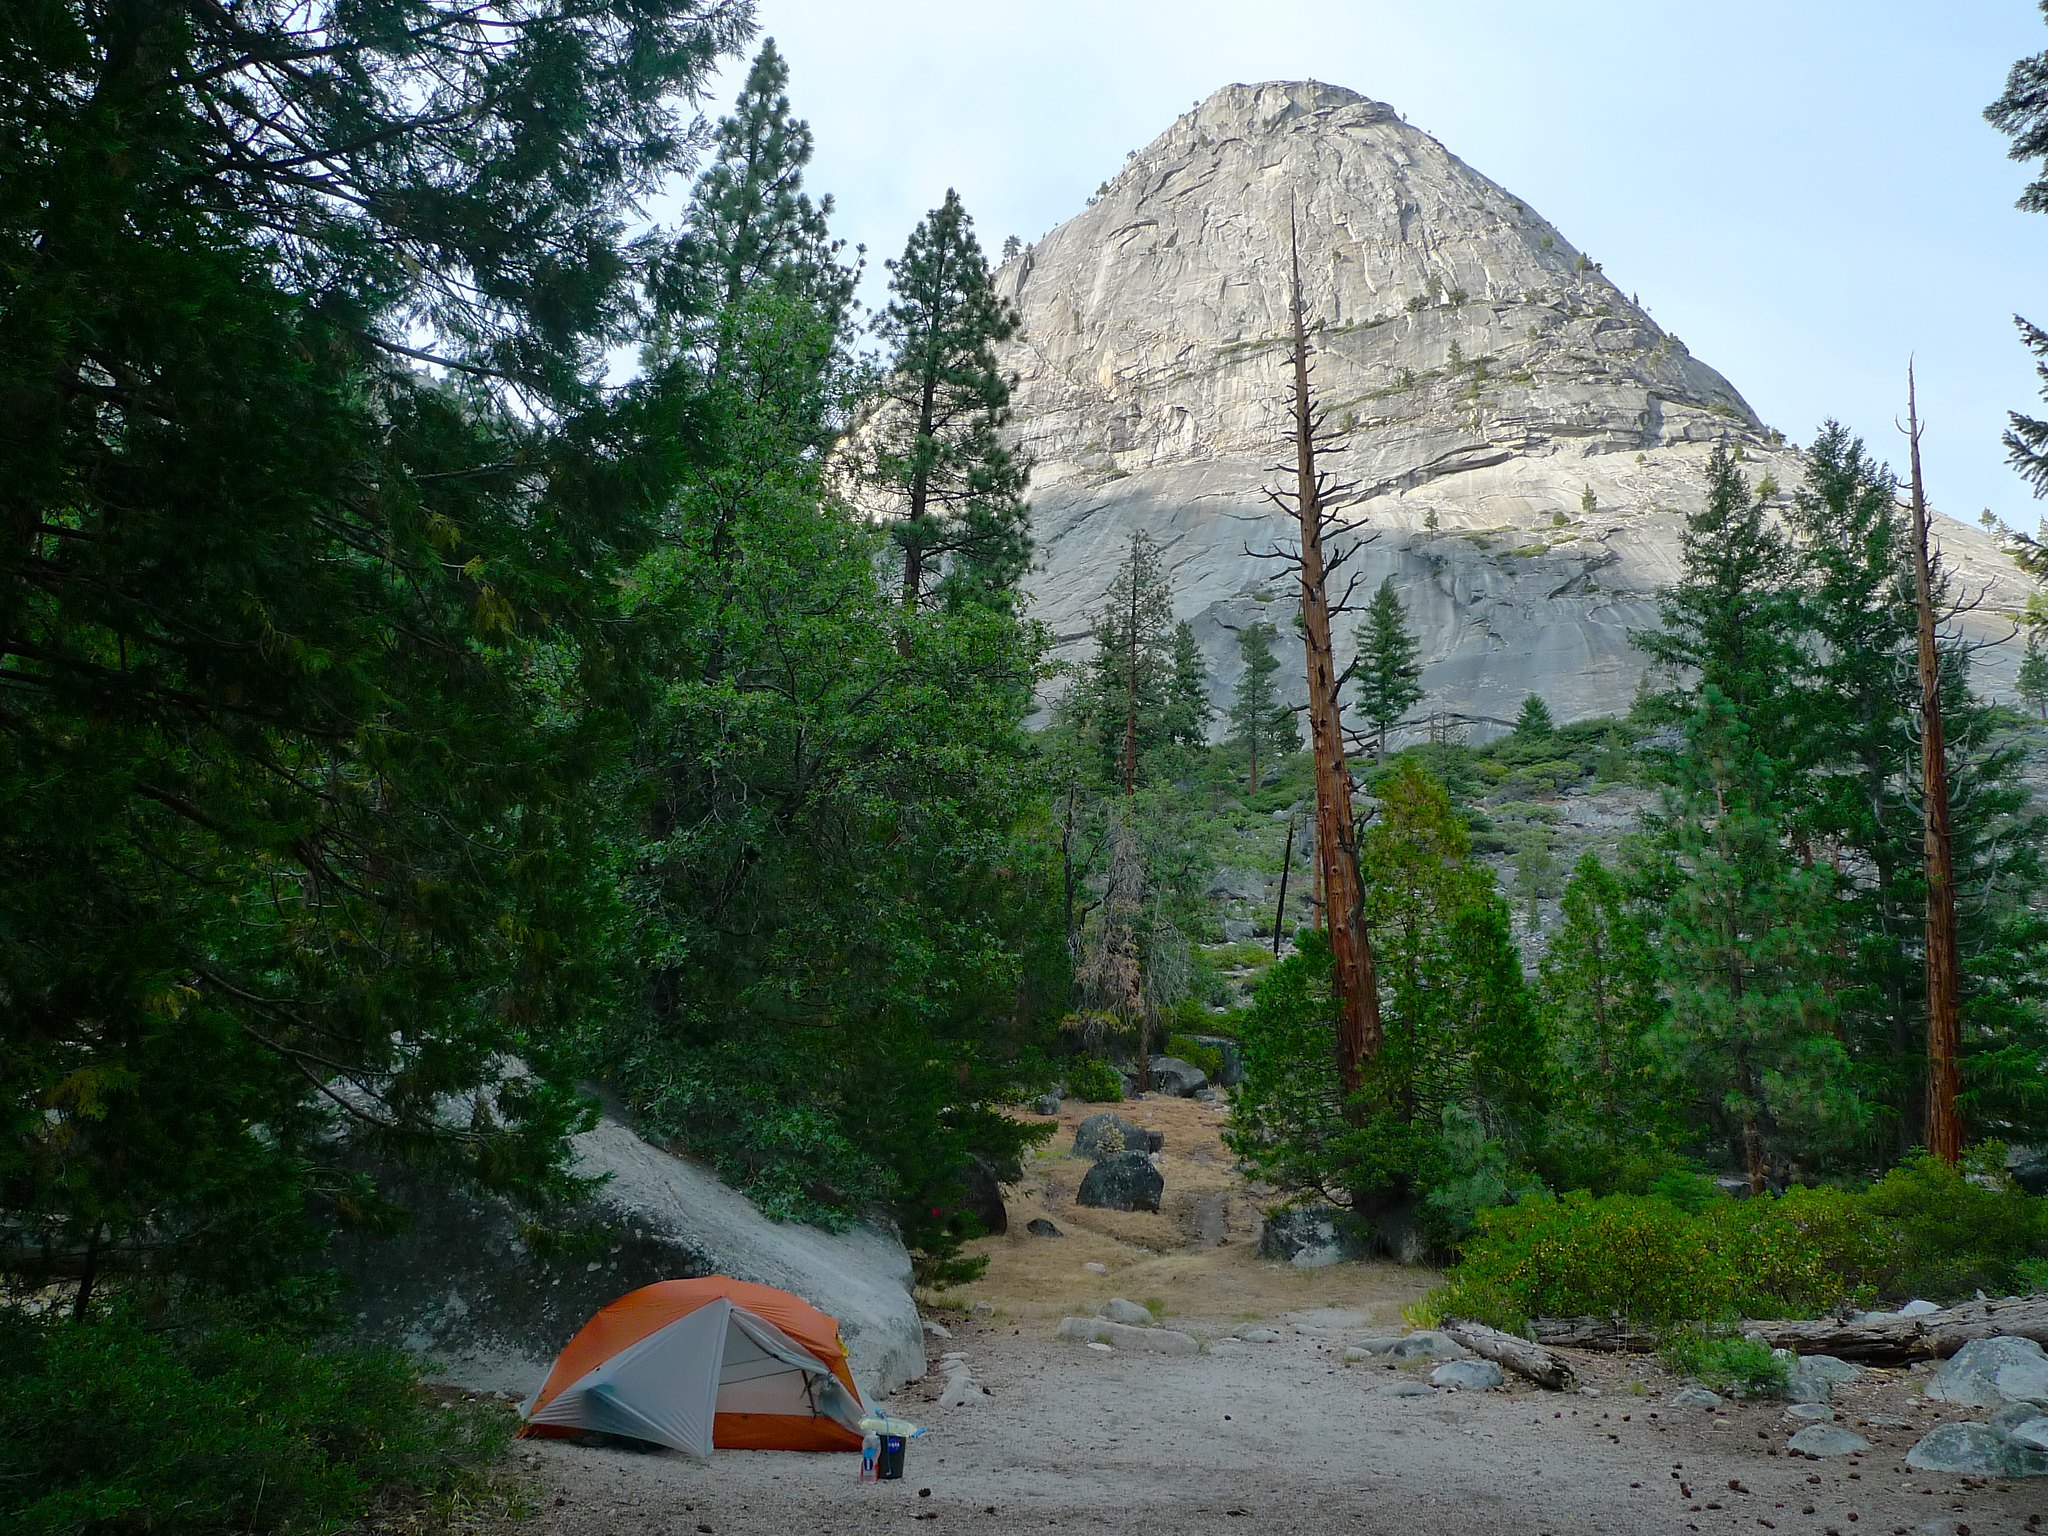 Camp in LIttle Yosemite Valley